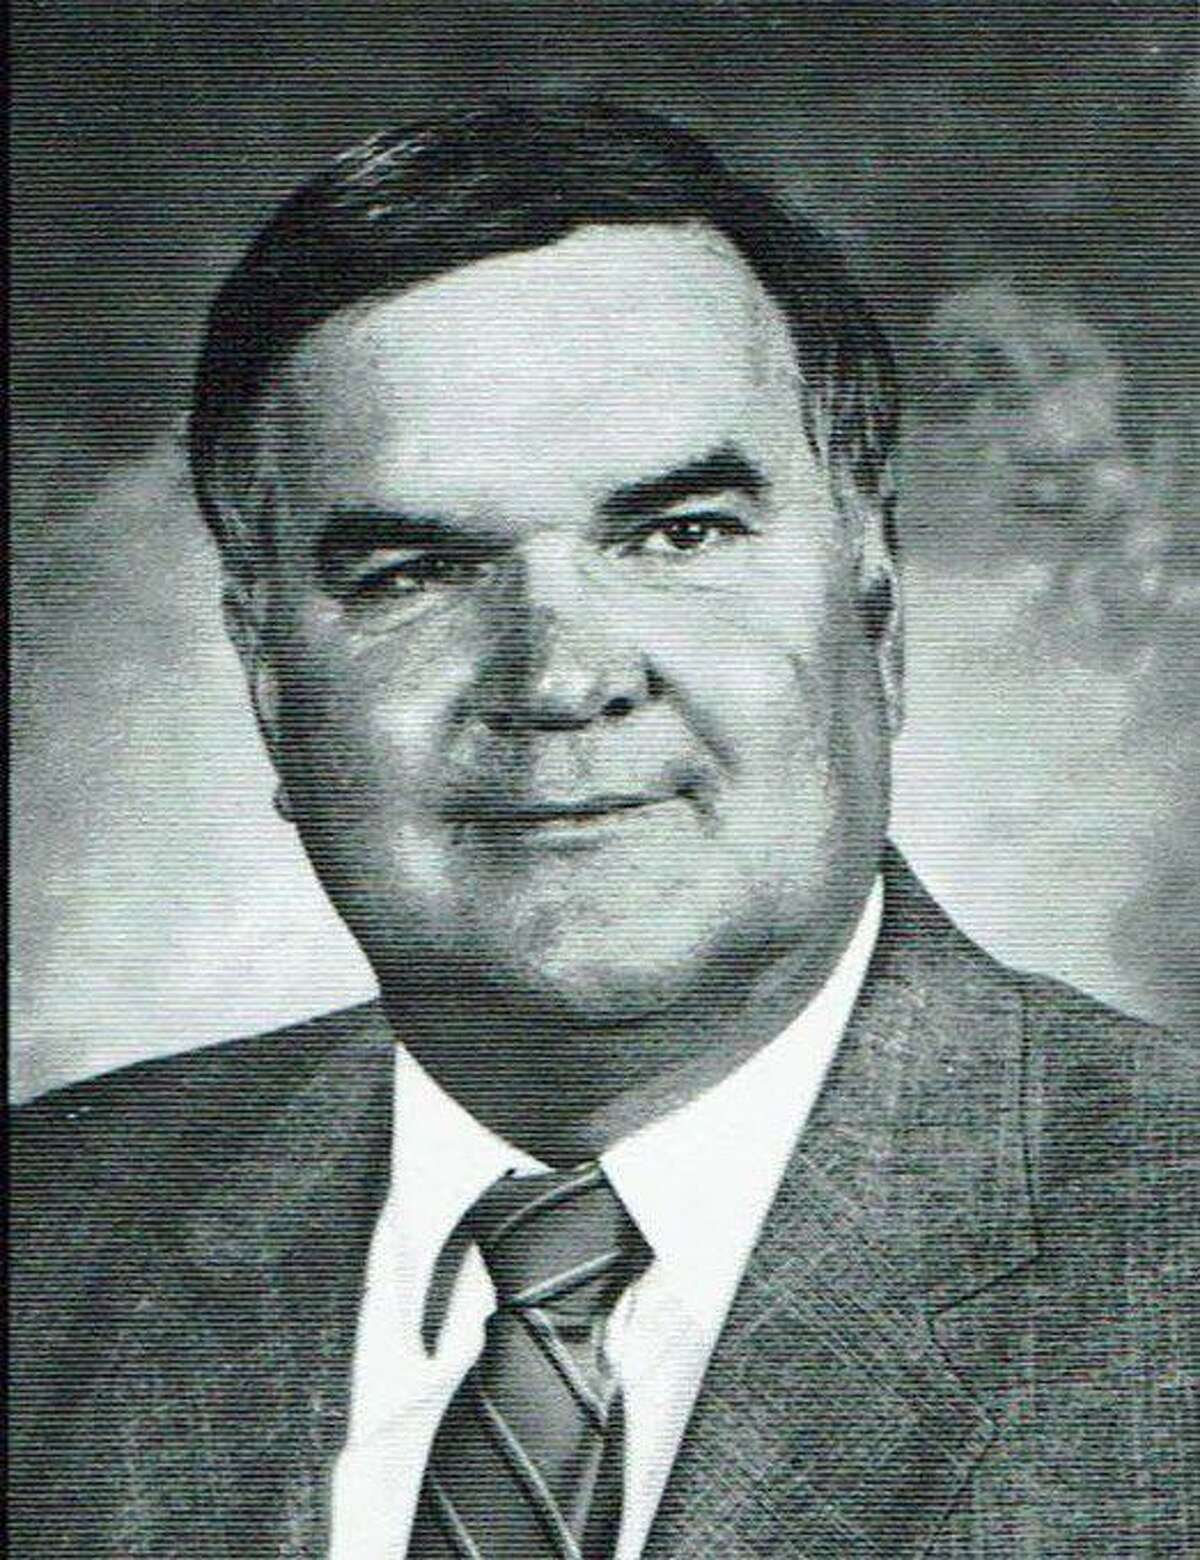 Former Friendswood ISD Superintendent Ted Thomas Sr. died on Dec. 28.